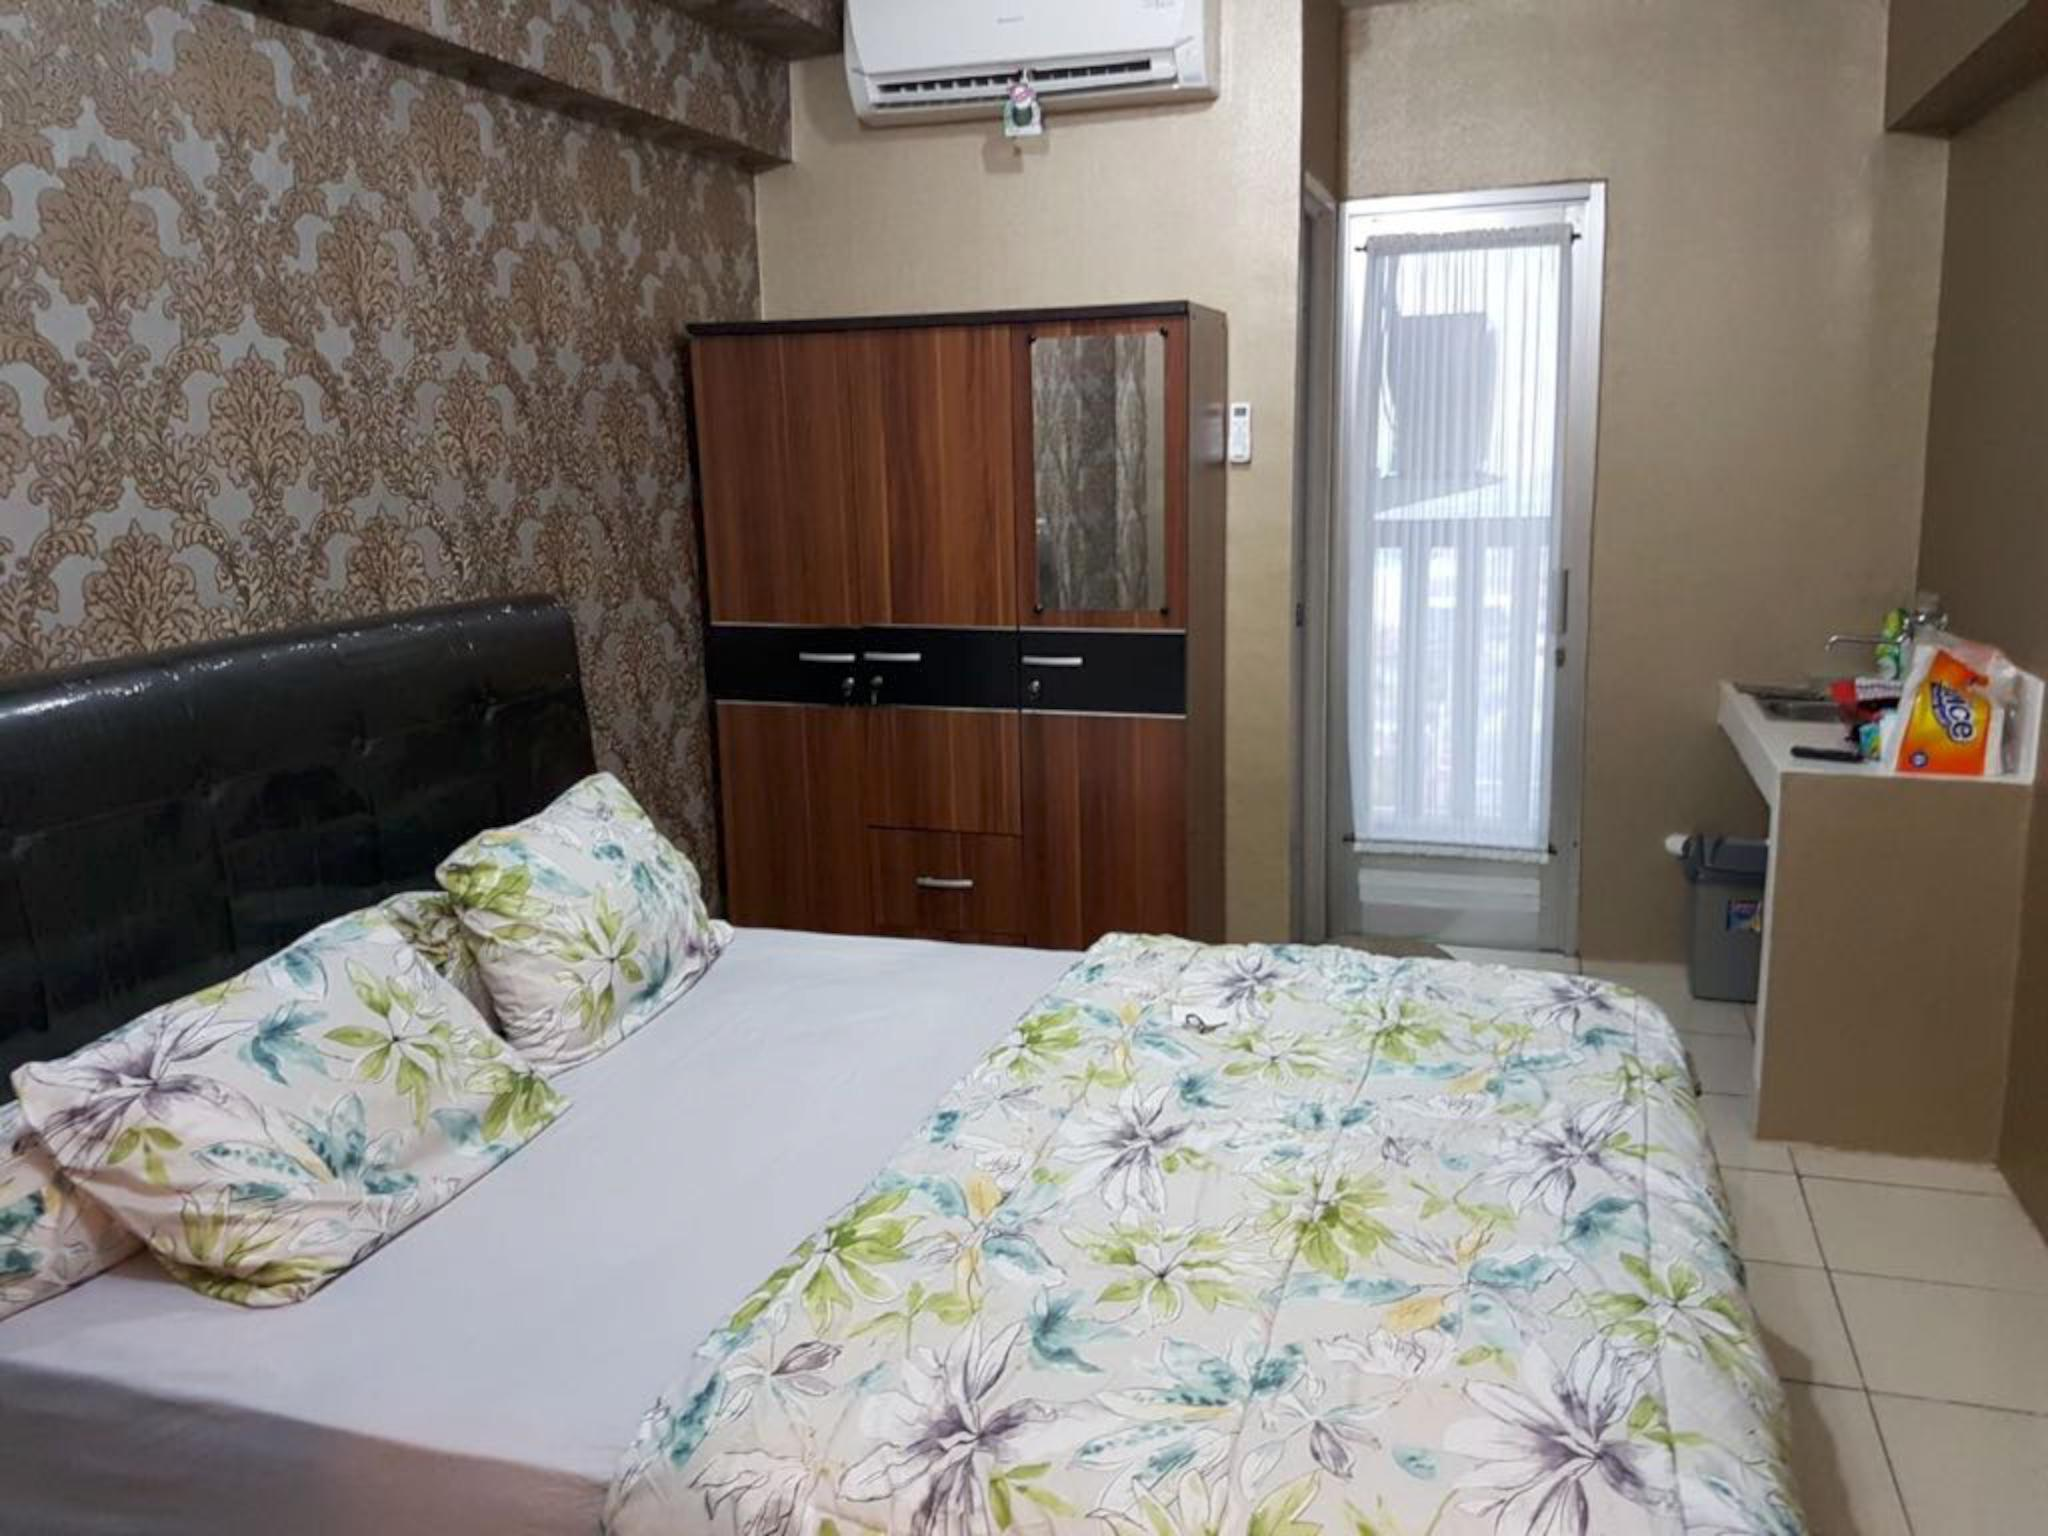 Hotel Apartment Greenbay PRO Studio 2 - Apartment Green Bay Pluit - Jakarta